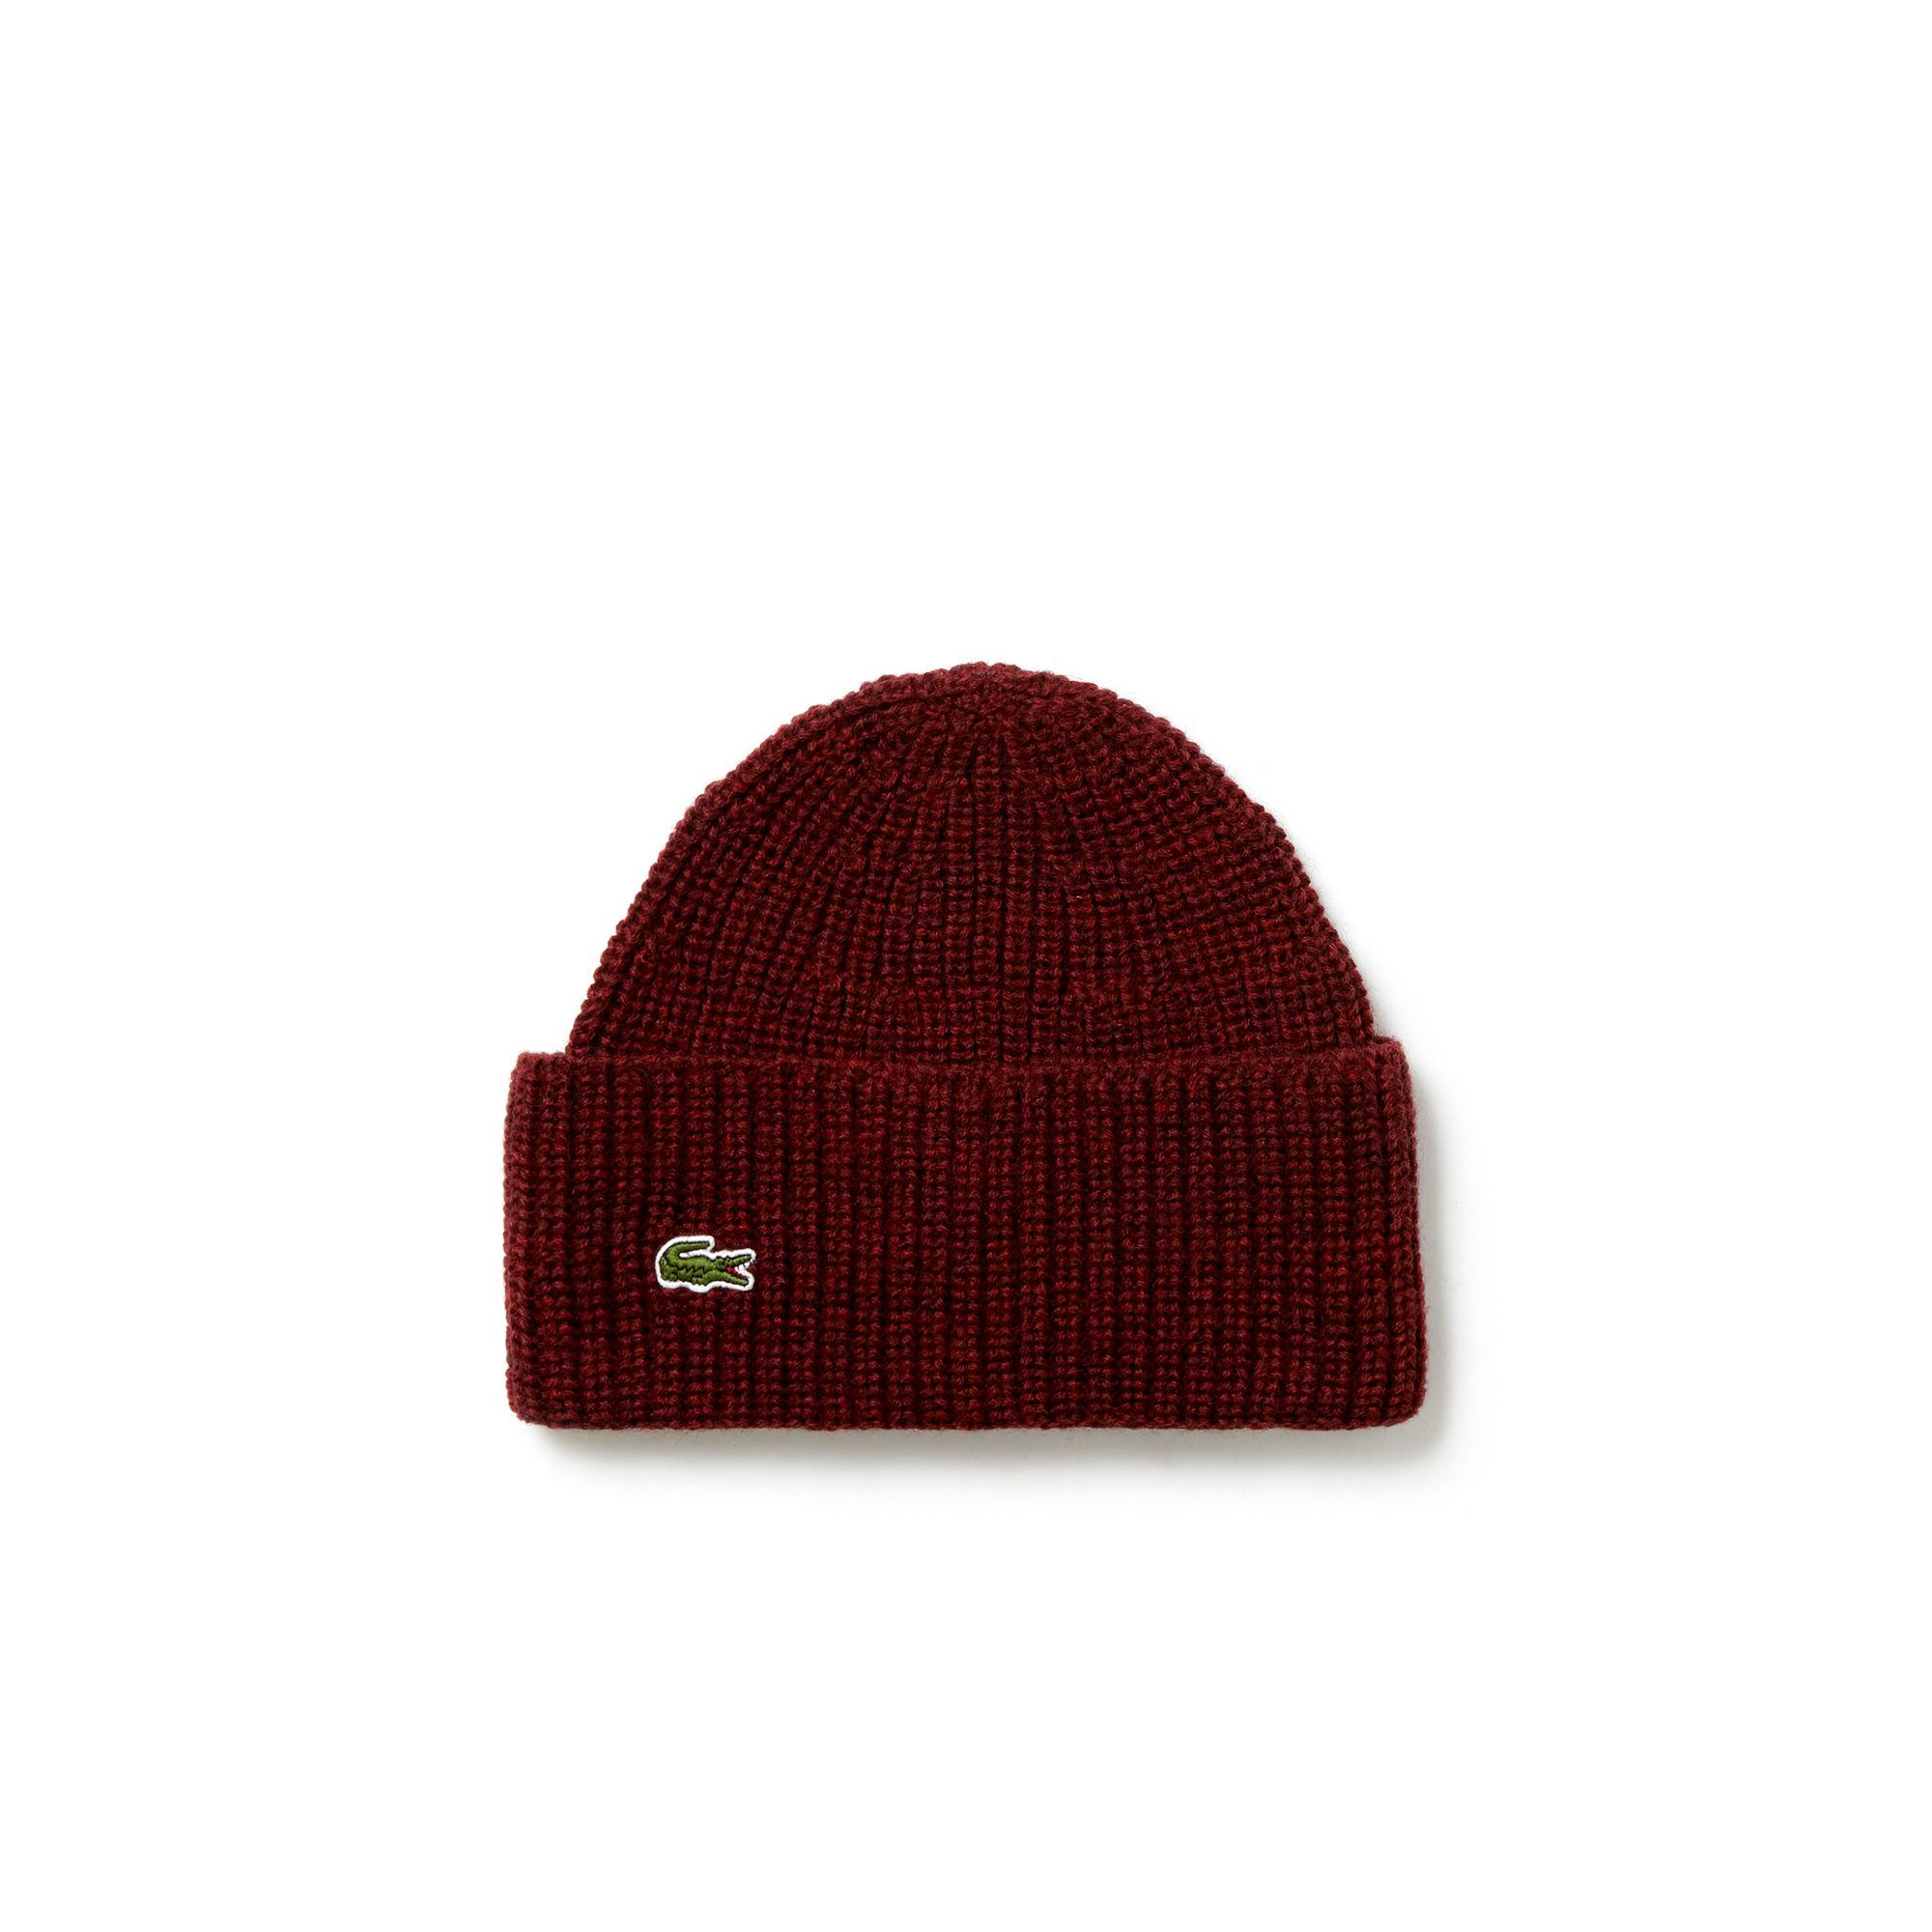 087fa1a5083 Lyst - Lacoste Turned Edge Ribbed Wool Beanie in Red for Men - Save 3%